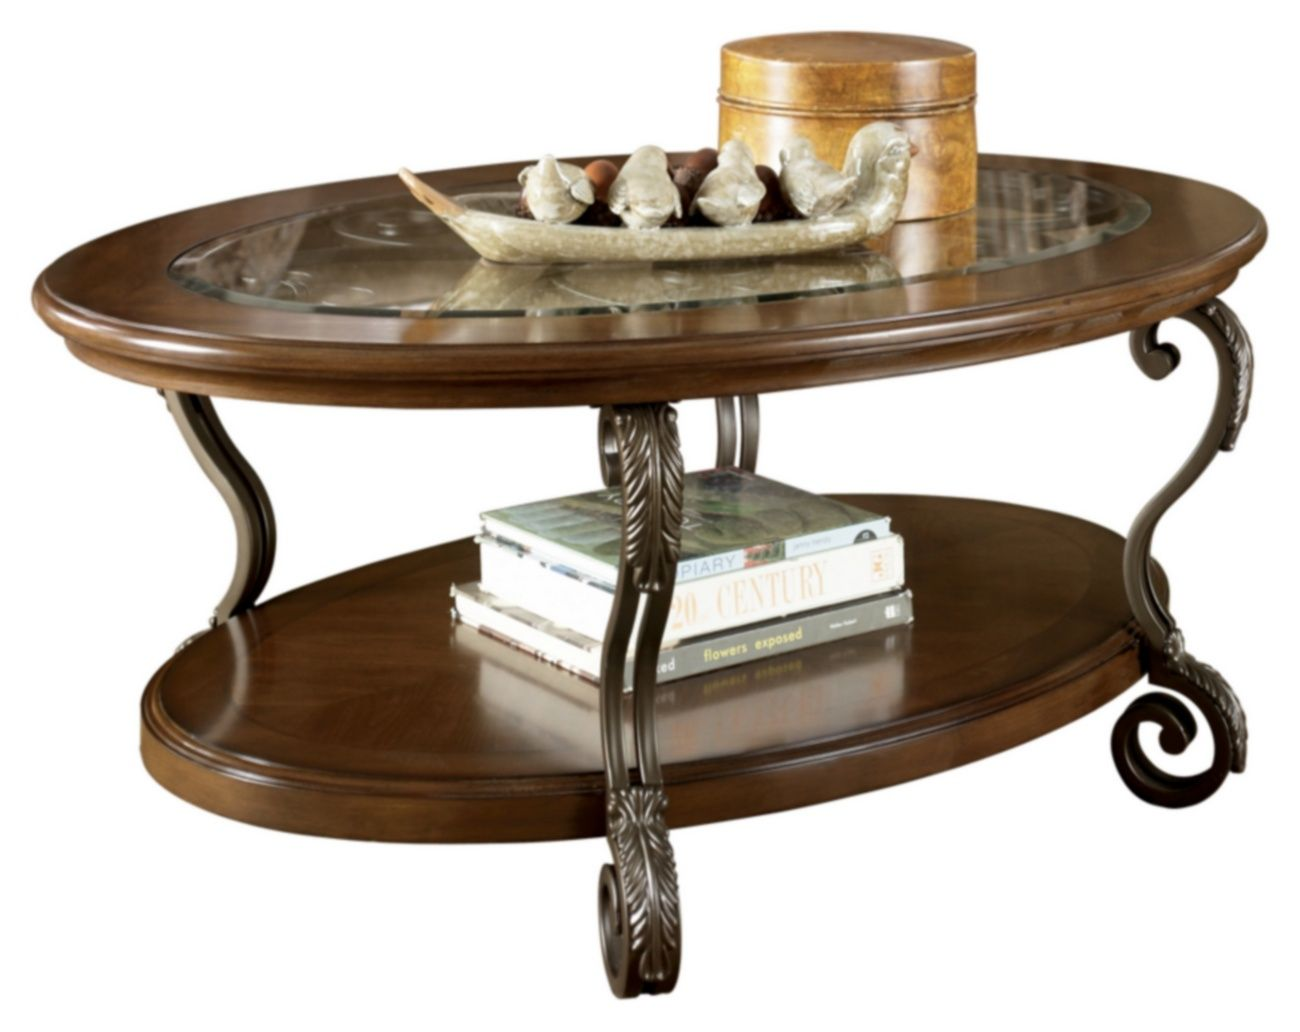 Signature Design Nestor Oval Cocktail Table Ashley Furniture T517 0 Oval Coffee Tables Glass Top Coffee Table Coffee Table [ 1032 x 1300 Pixel ]